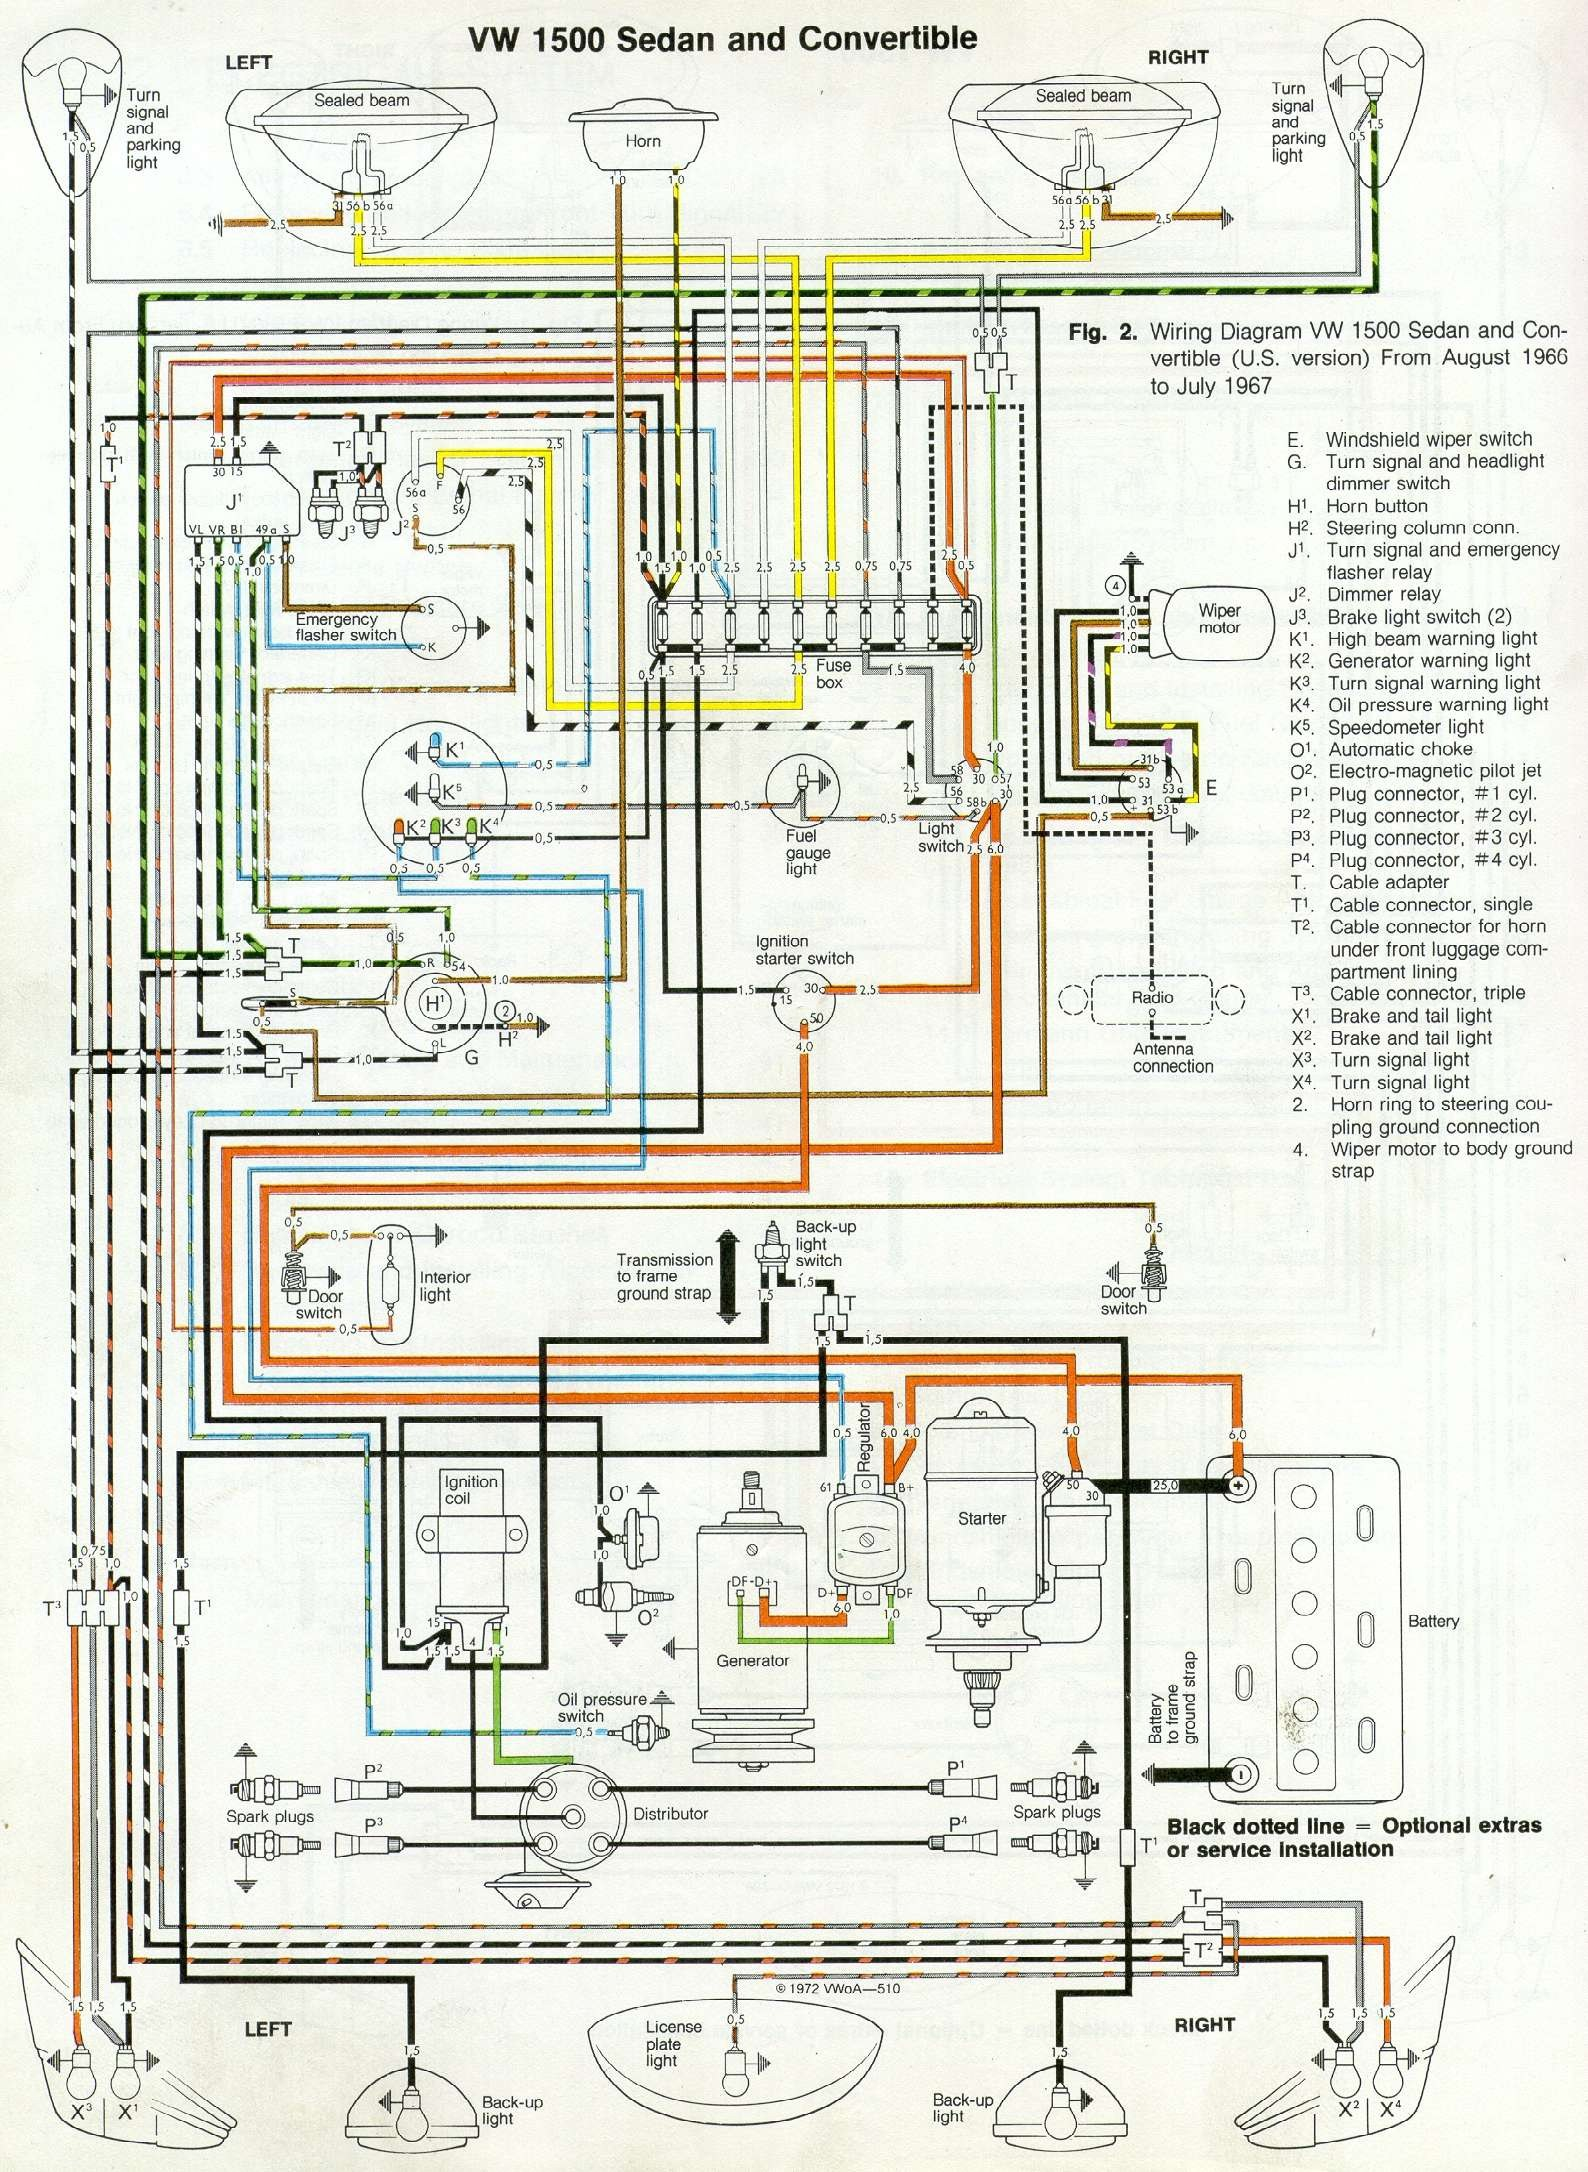 Funky Wiring Tub Hot 630 Diagramrcoleman Mold - Electrical Diagram ...